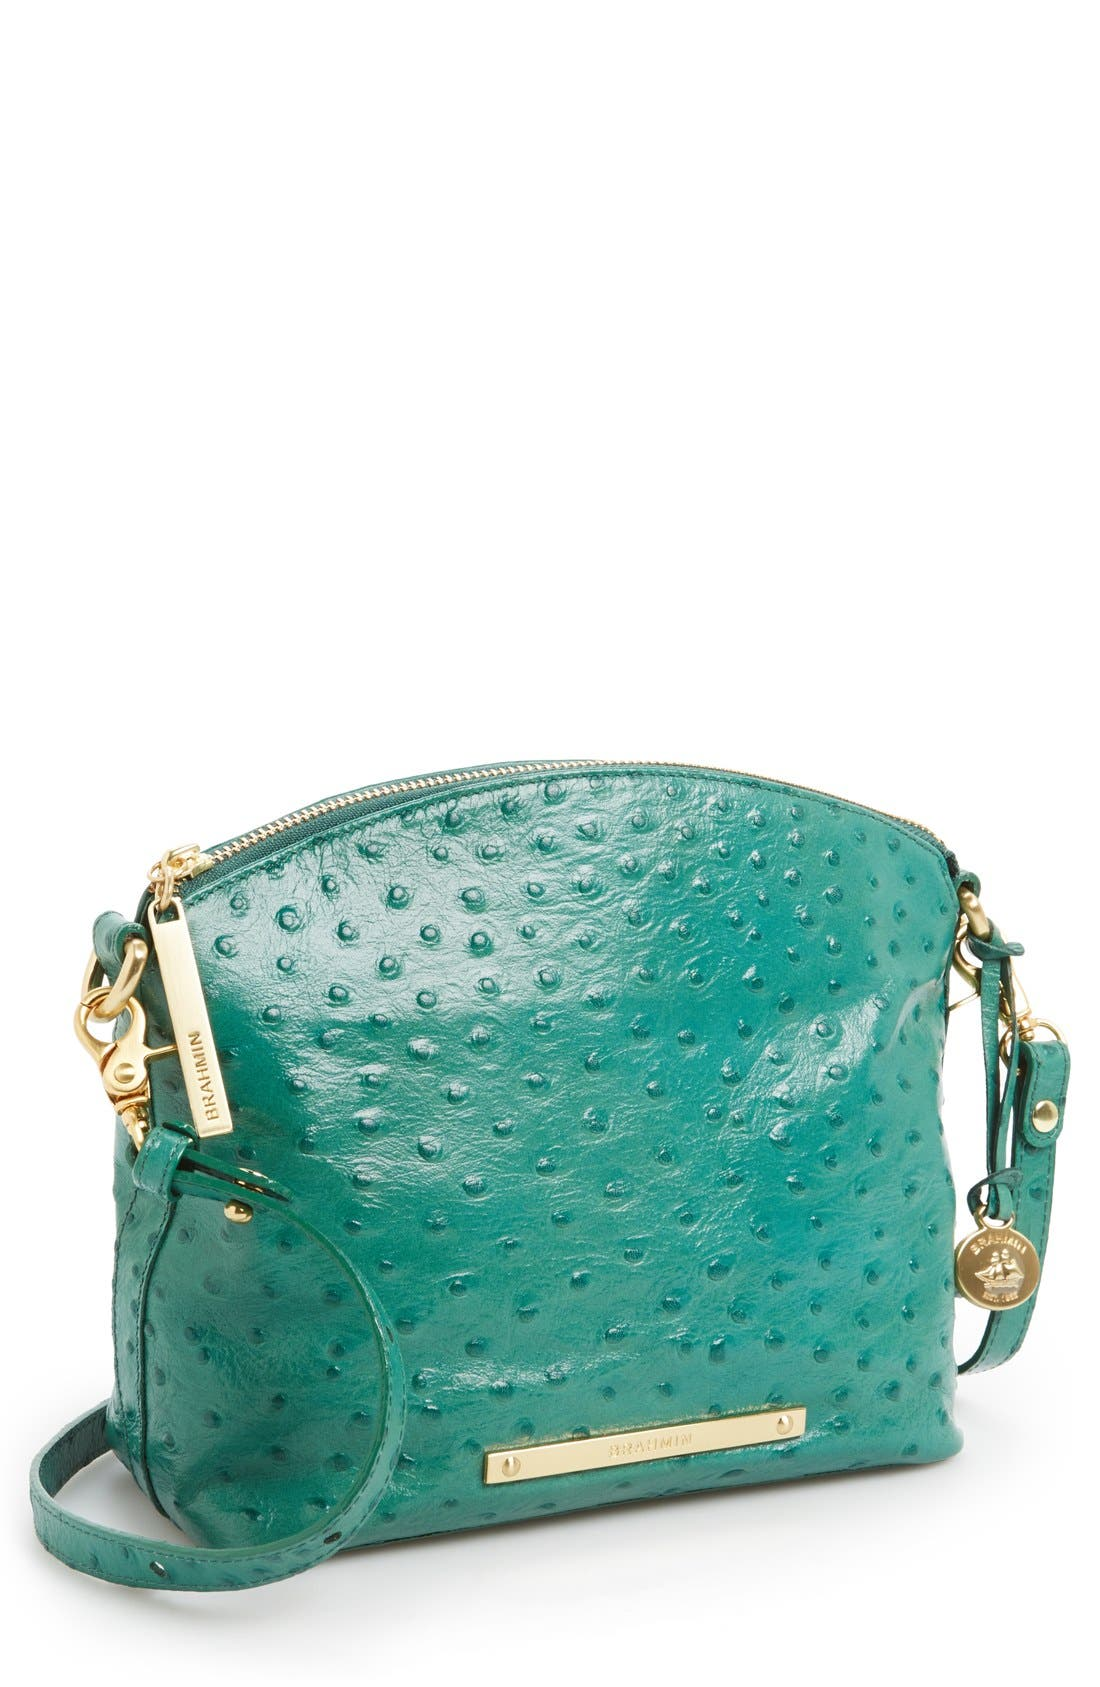 Main Image - Brahmin 'Mini Duxbury' Leather Crossbody Bag